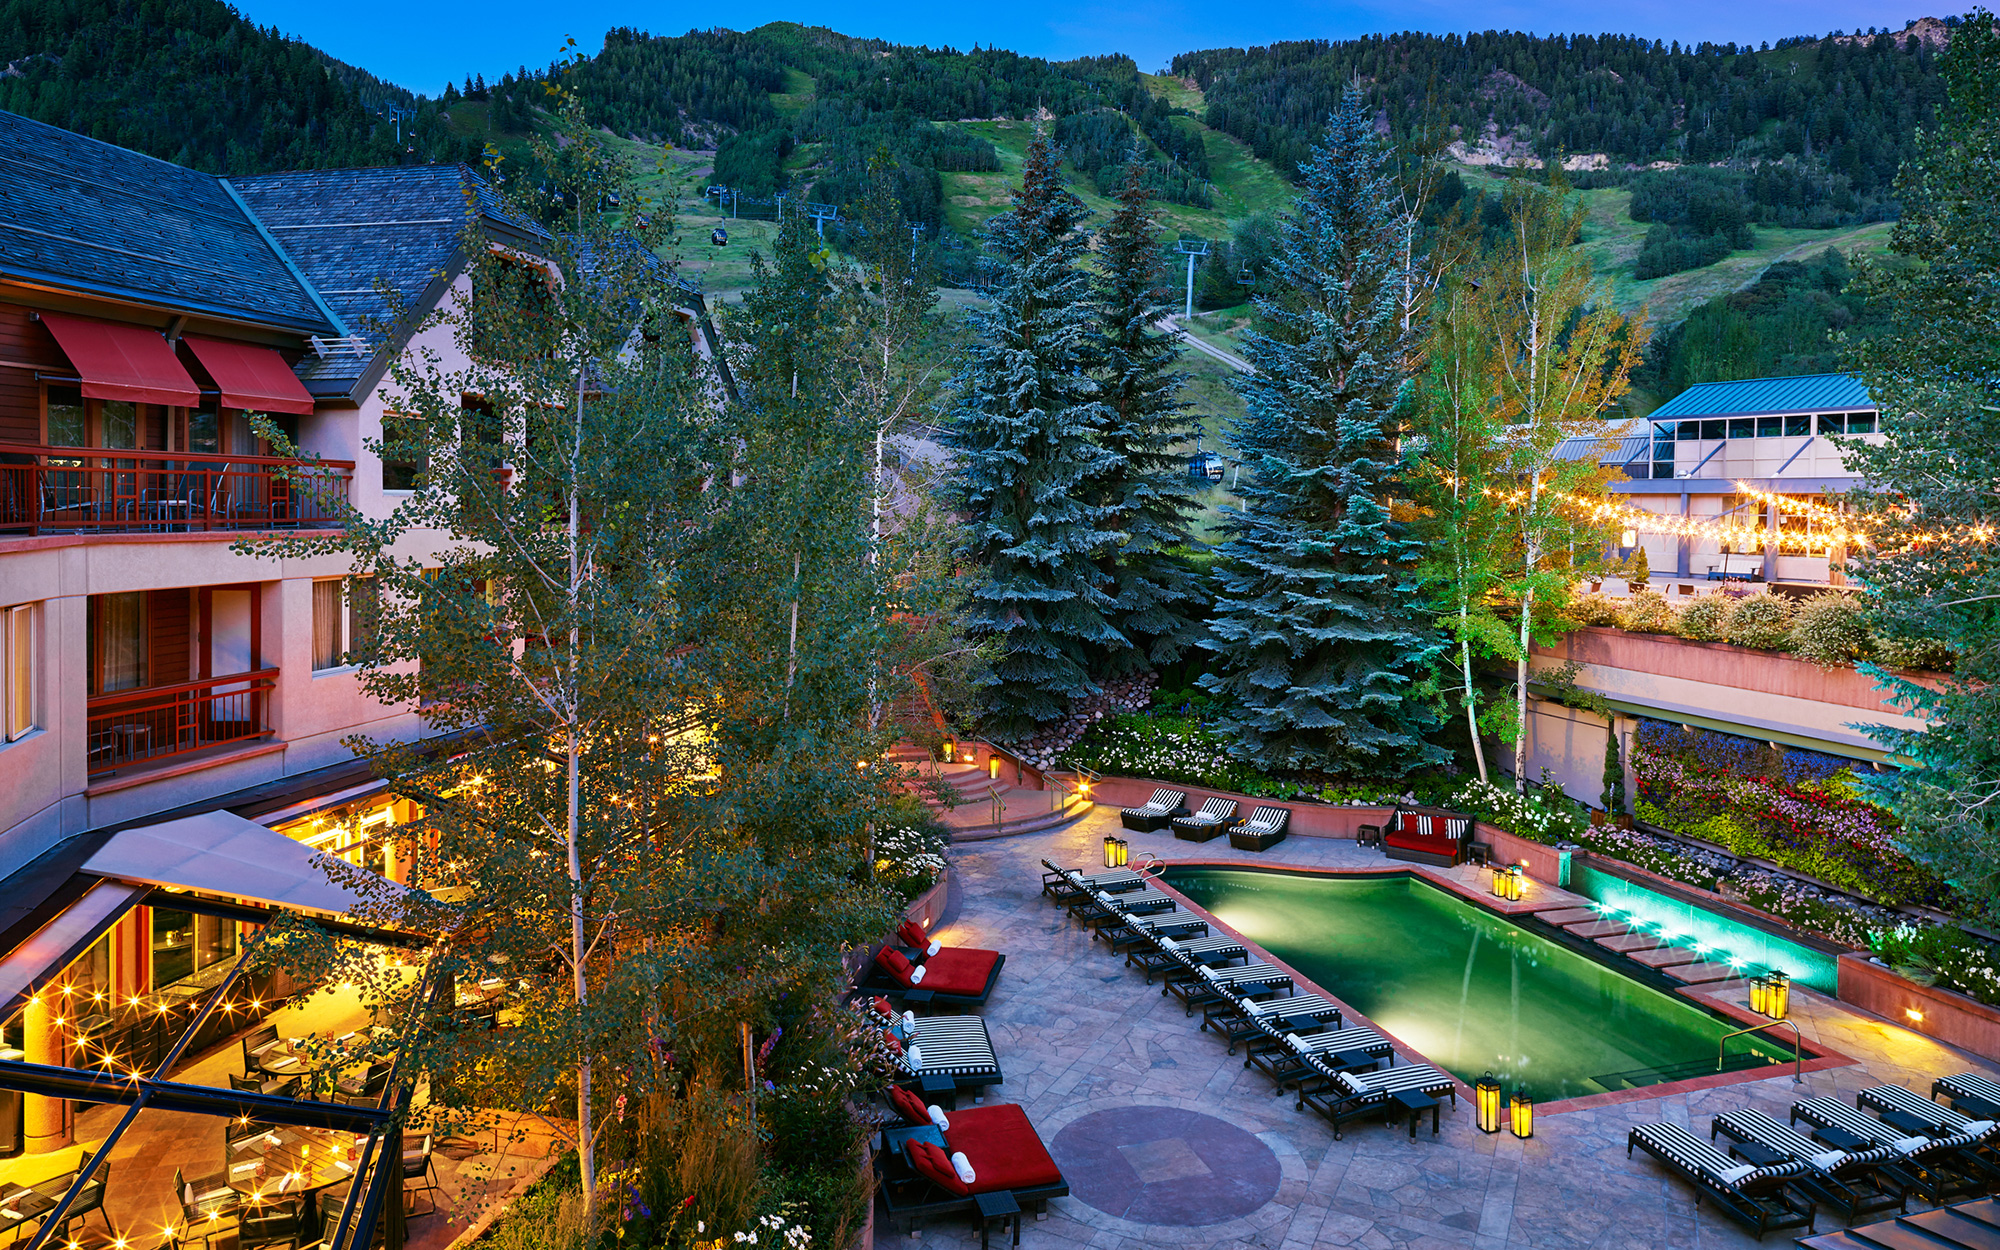 A skier's paradise, the Little Nell boasts Aspen's best address. The ski-in/ski-out resort offers the utmost in luxurious digs, which earned it a score of 94.667 in T+L's Worlds Best survey. Spacious rooms have heated marble floors, fireplaces, soaking tubs, and plush goose-down linens. The pet-friendly hotel even has comfy dog beds and in-room pet menus. The Element 47 lounge is perfect for a meal or après-ski cocktail.